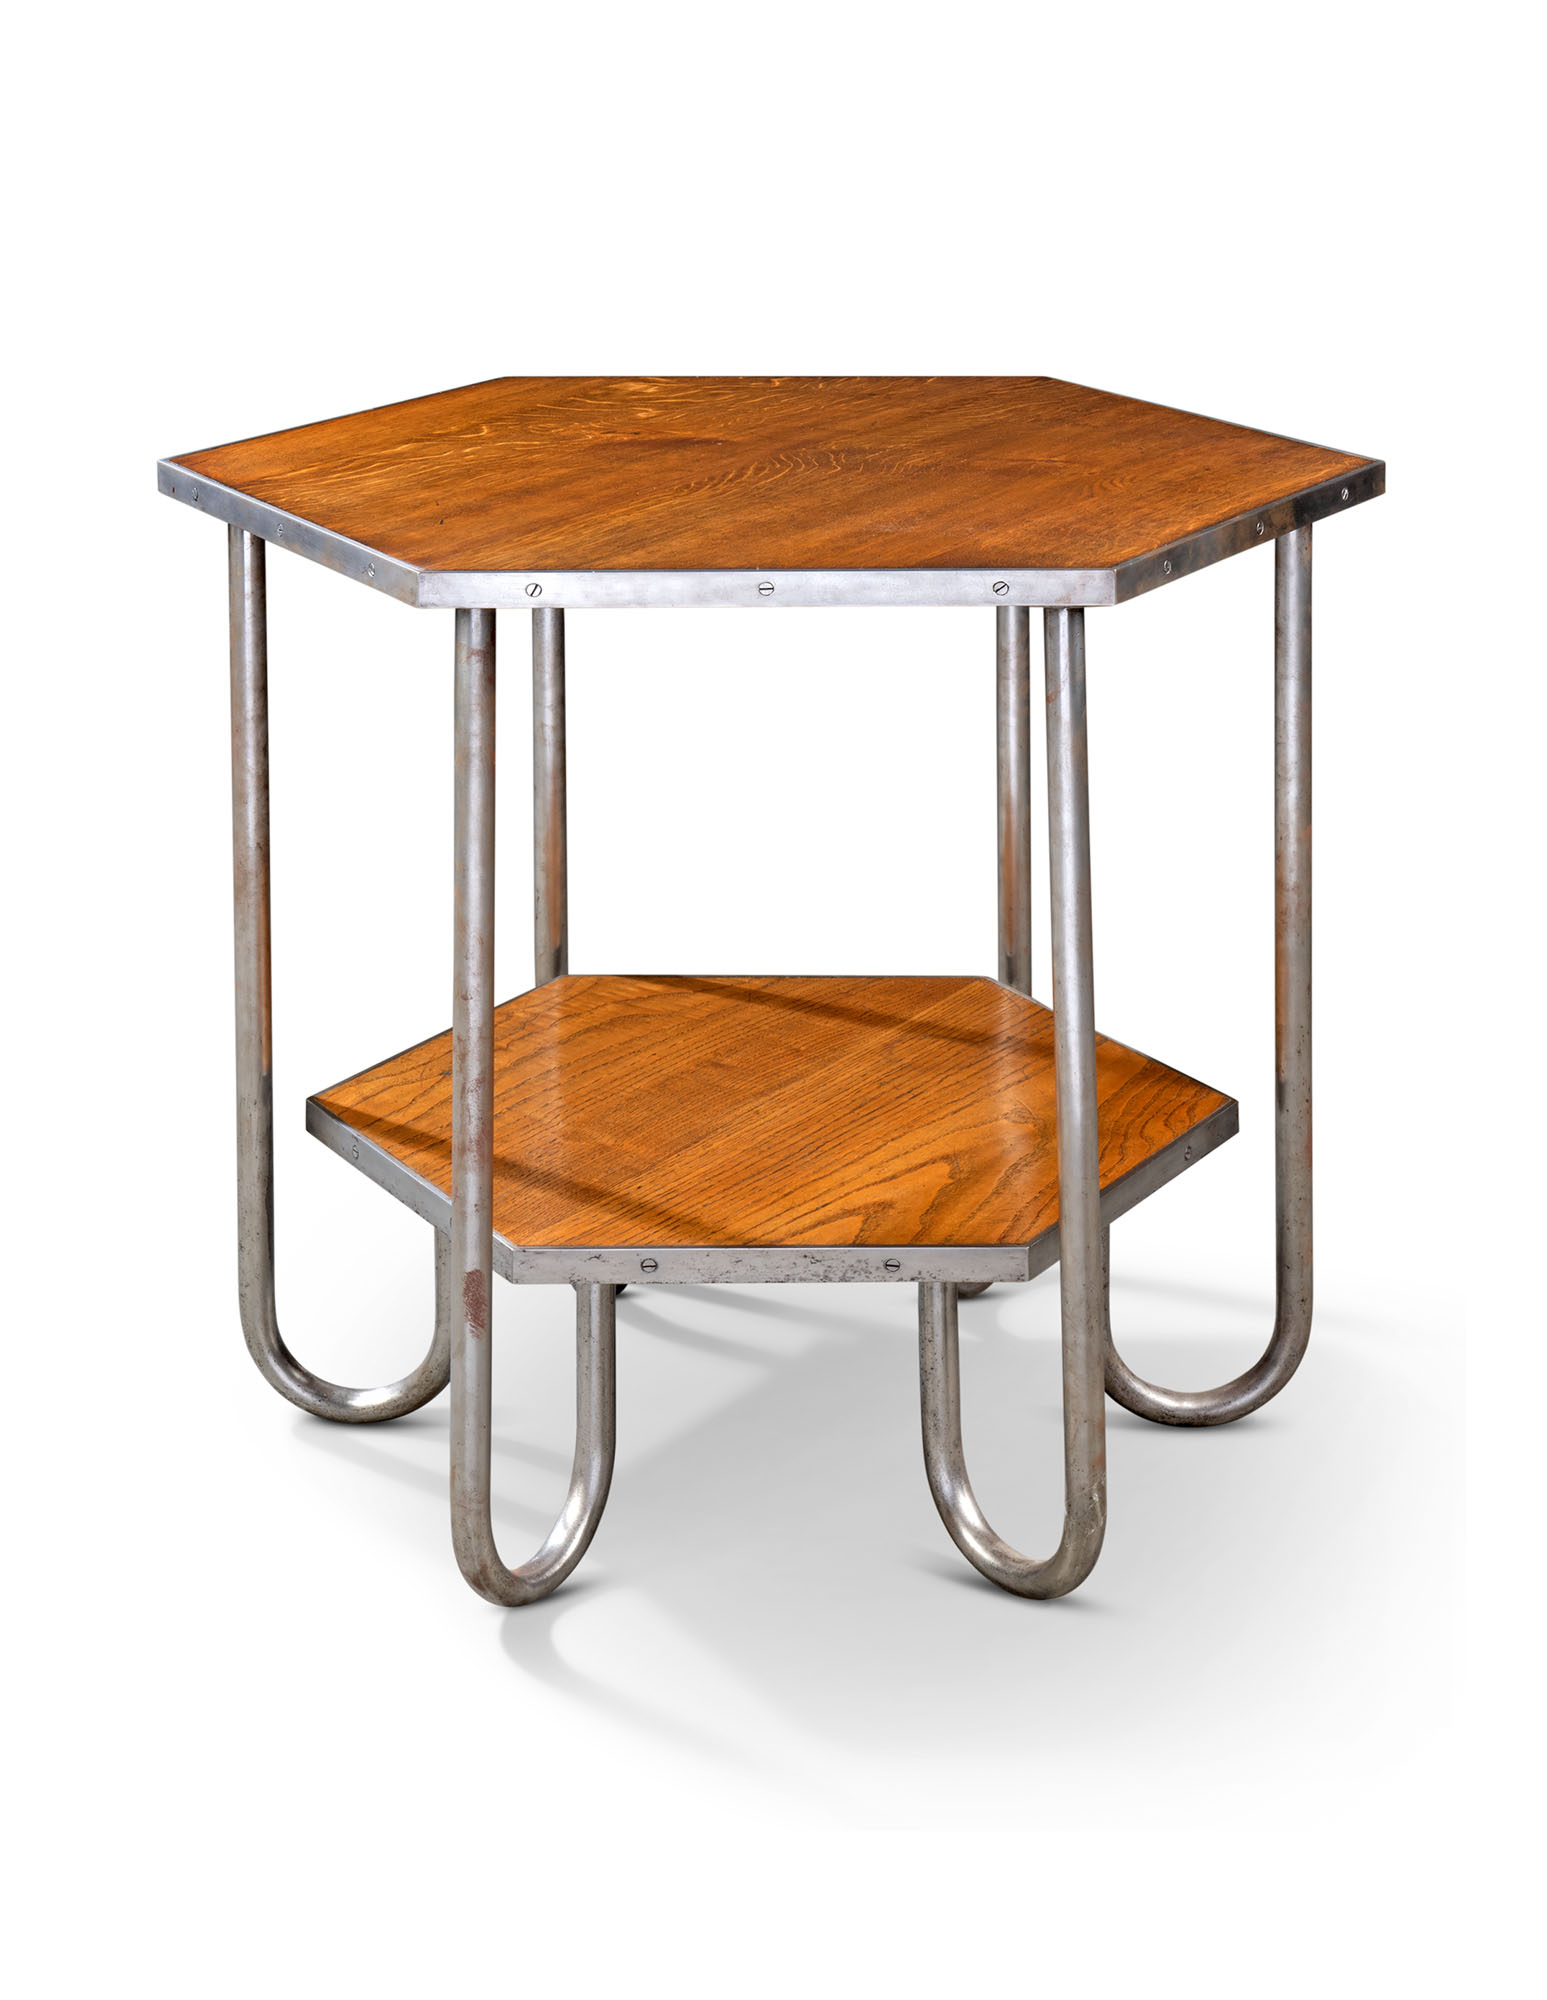 A FRENCH STEEL AND OAK HEXAGONAL OCCASIONAL TABLE